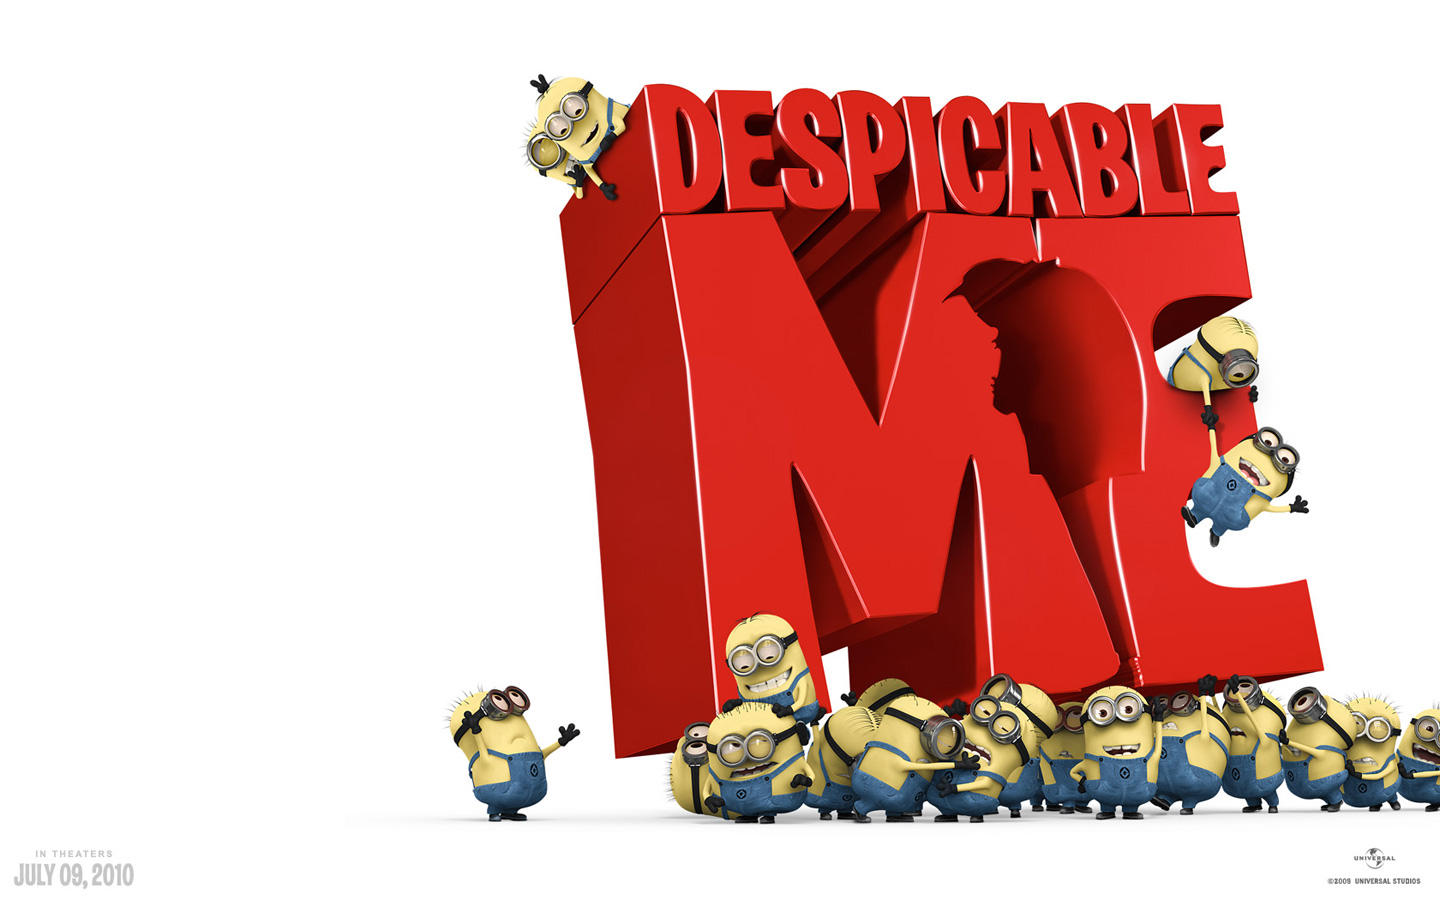 http://4.bp.blogspot.com/_UwyhJwj63L0/TDNY_jJkjOI/AAAAAAAABe4/NxdfgZfqqcs/s1600/despicable_me_hd_widescreen_wallpapers_1440x900.jpeg